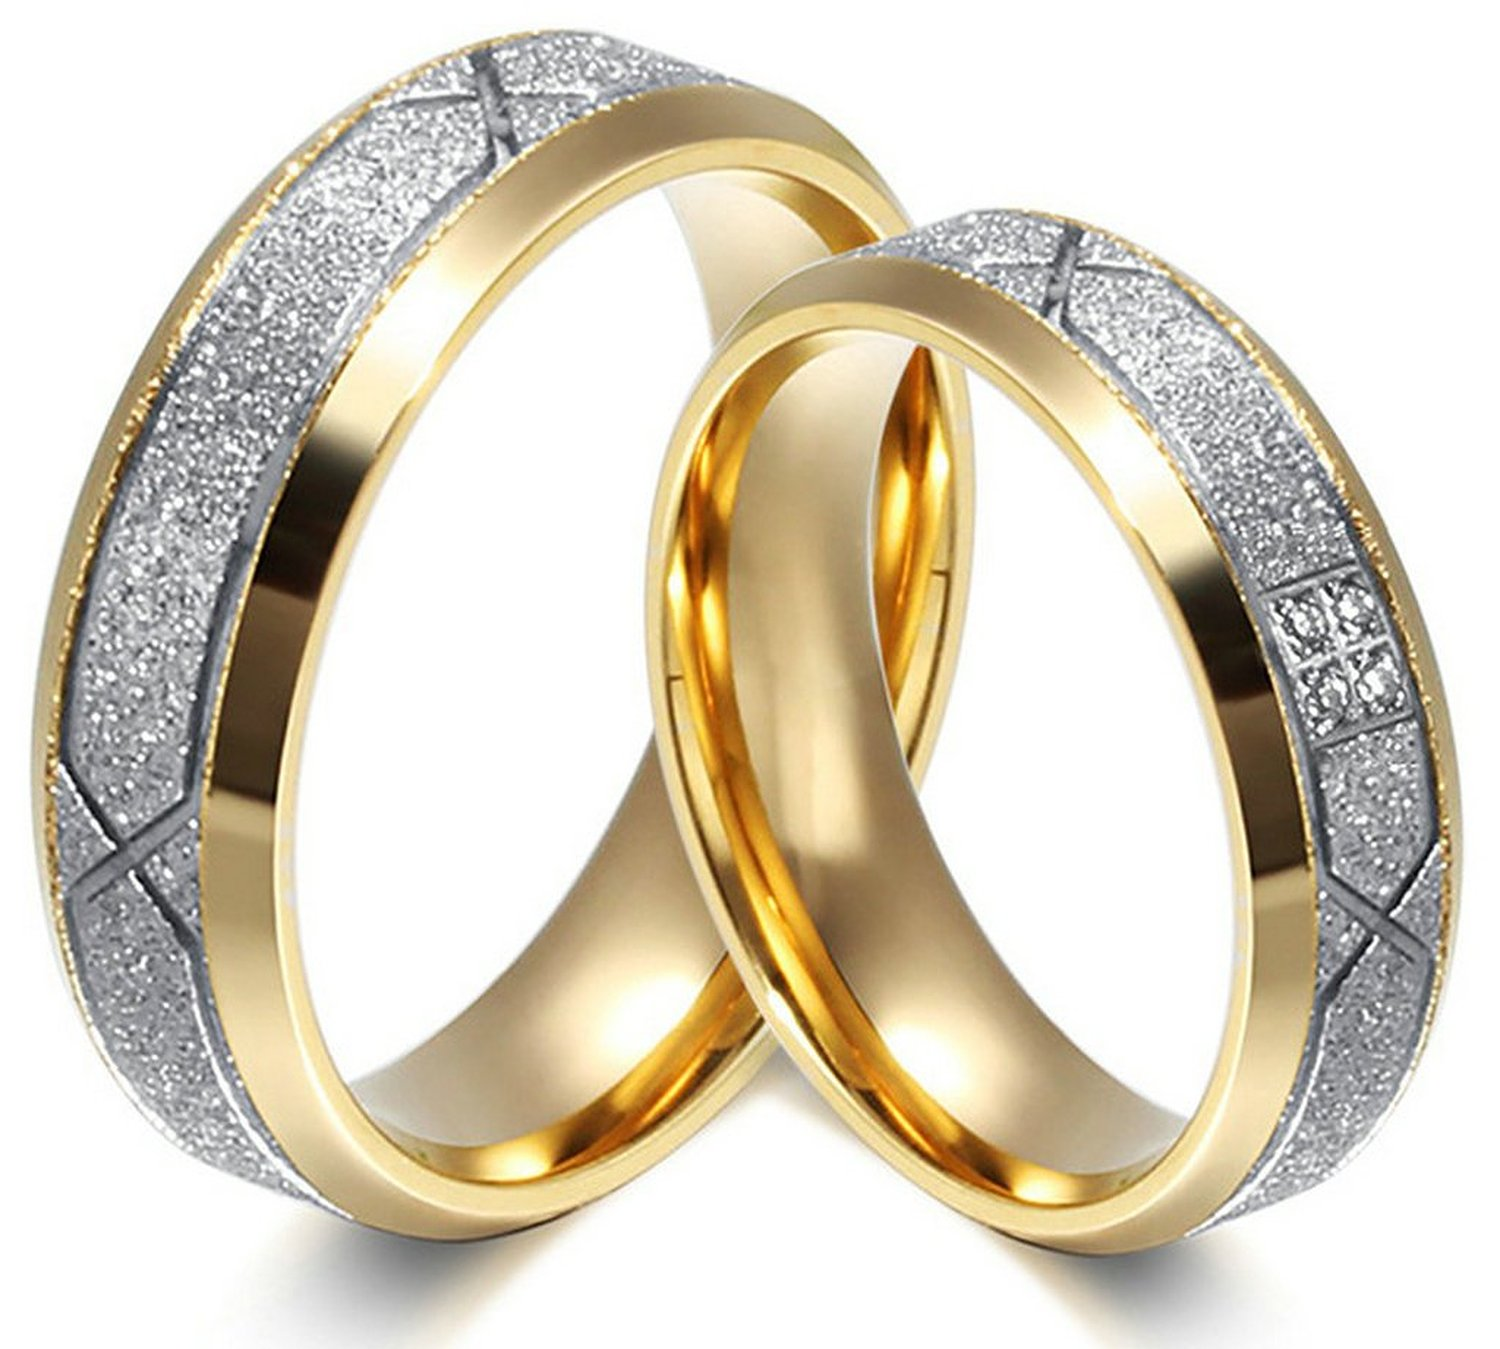 AnazoZ Jewelry Promise Rings for His and Her Couple Ring Titanium Wedding Engagement Band Top AAA CZ Ring 6mm, Colour Gold